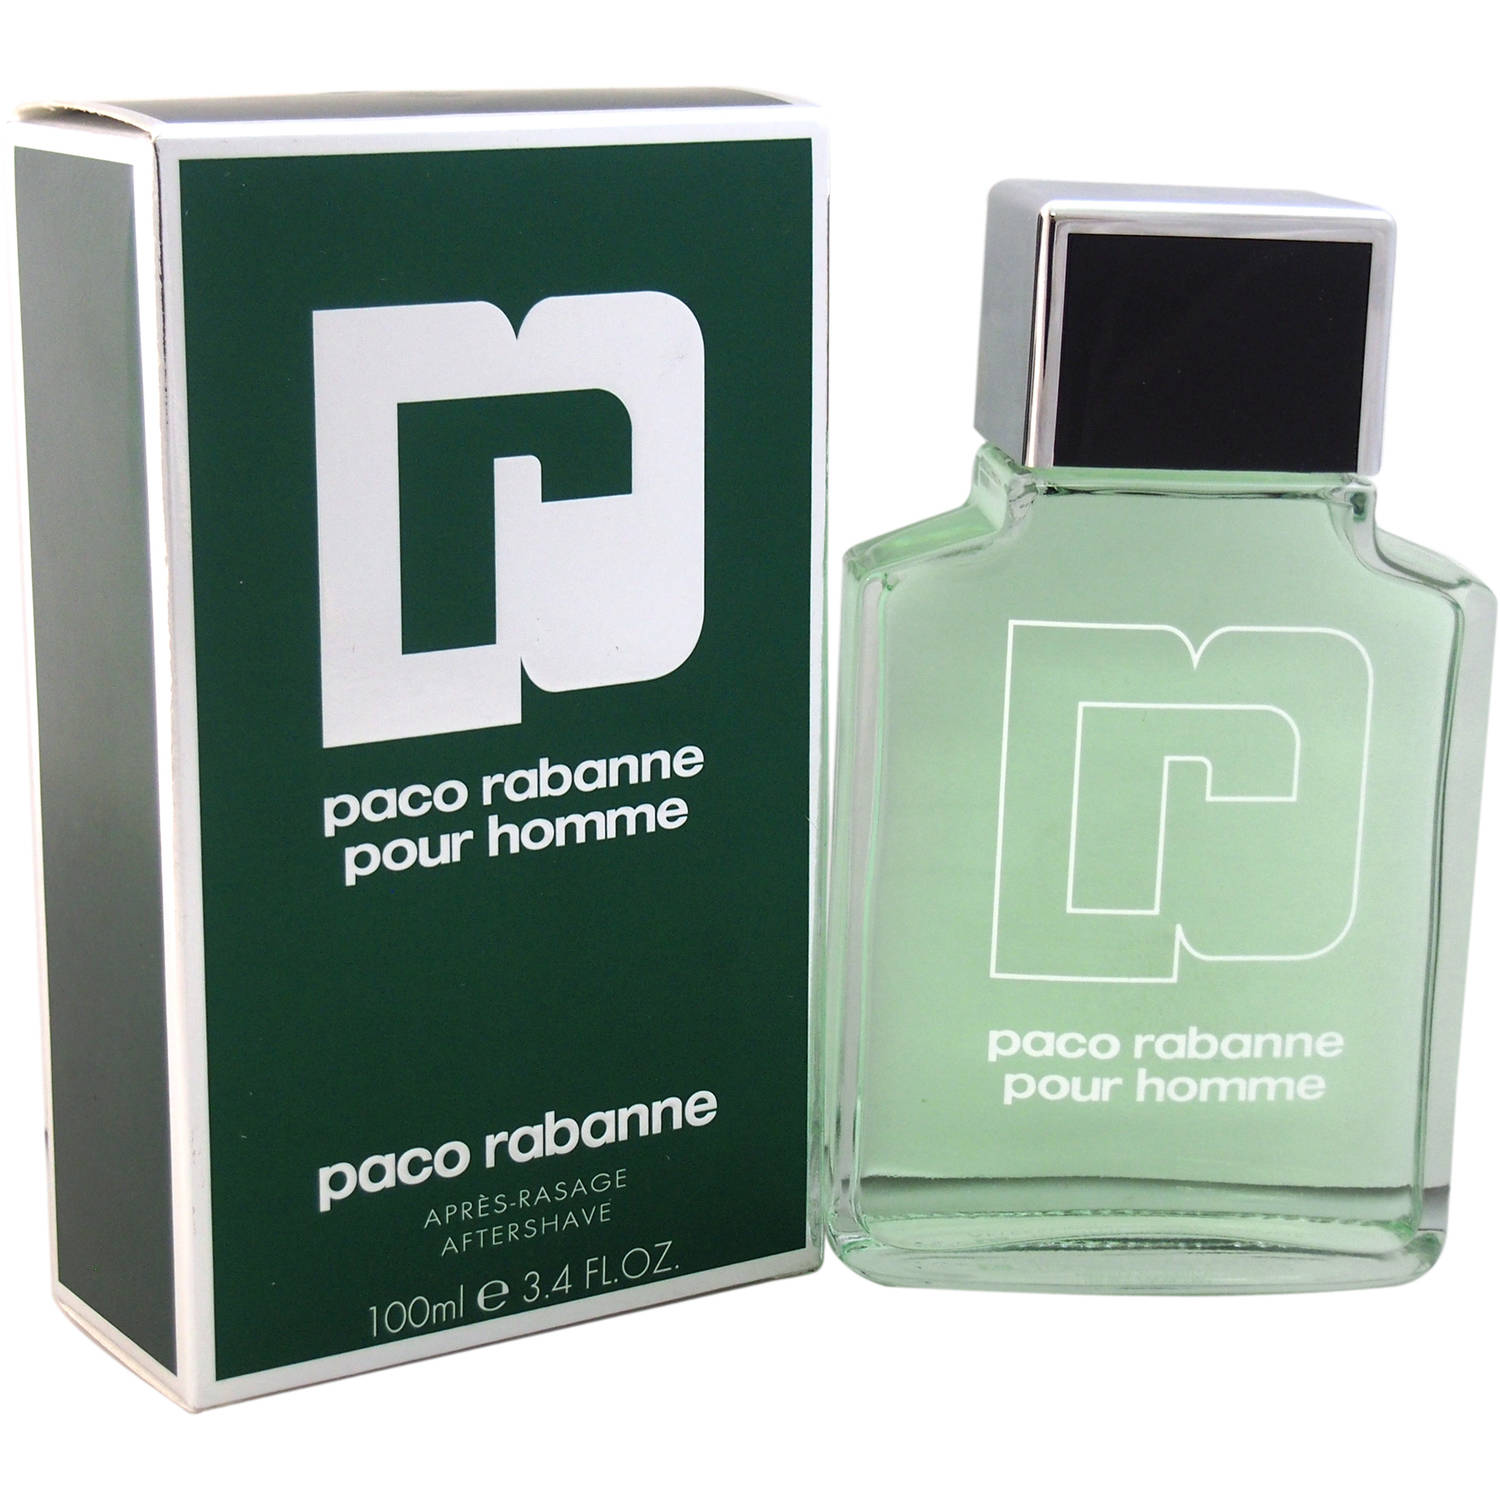 Paco Rabanne for Men Aftershave, 3.4 oz